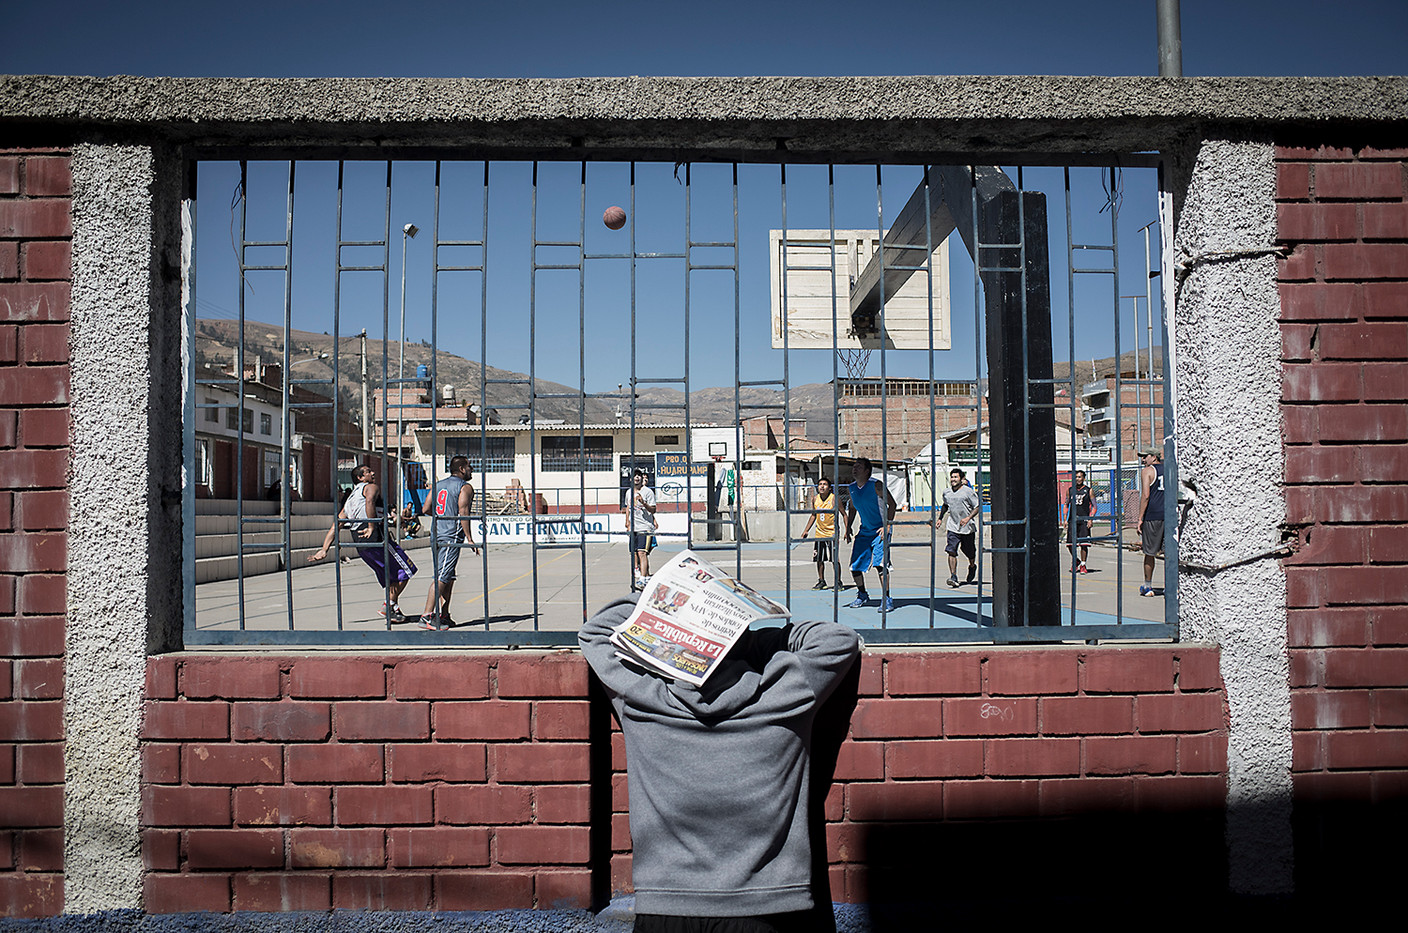 A spectator shields himself from the midday sun while watching a pickup game in Huaraz.